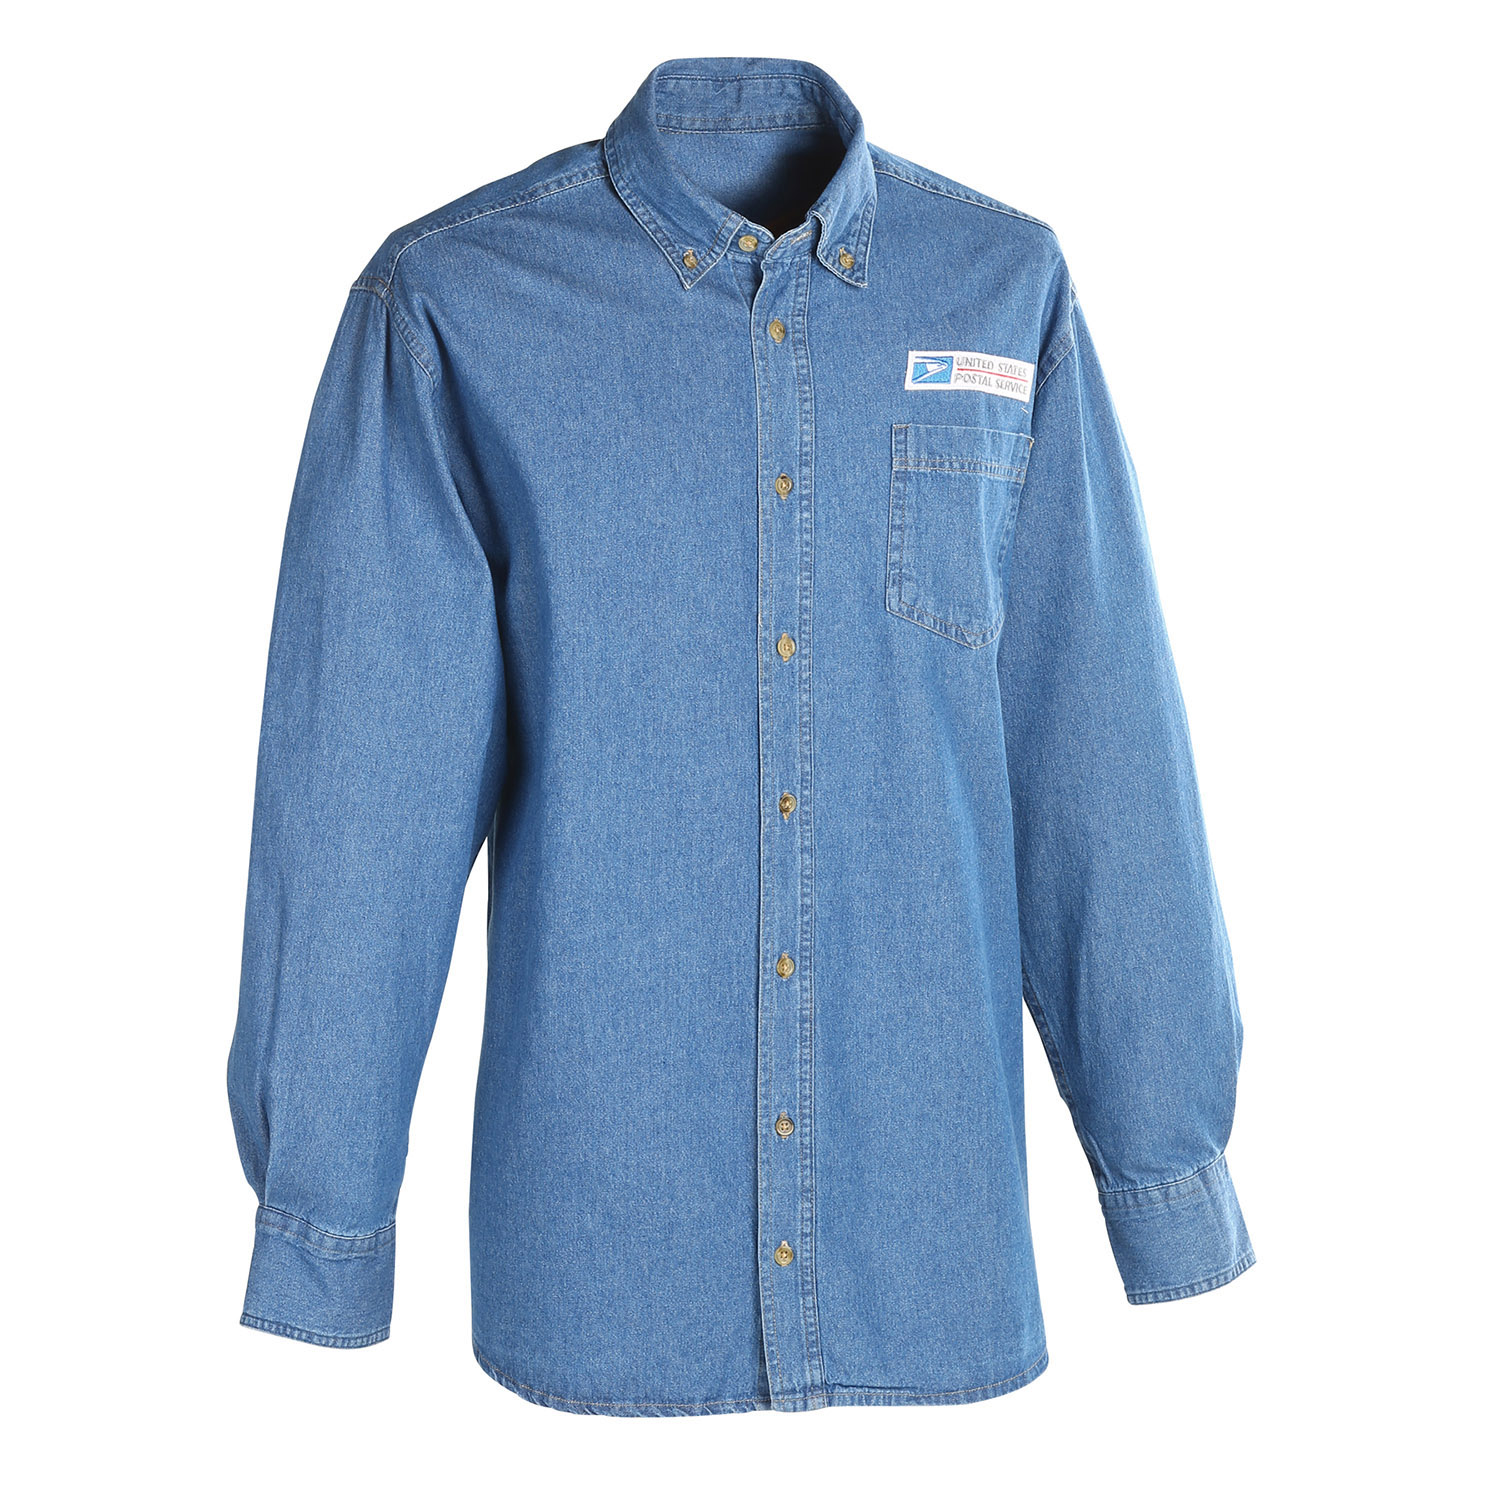 94d61f9c Postal Uniform Shirt Denim Long Sleeve for Mail Handlers and Maintenance  Personnel (PX142)